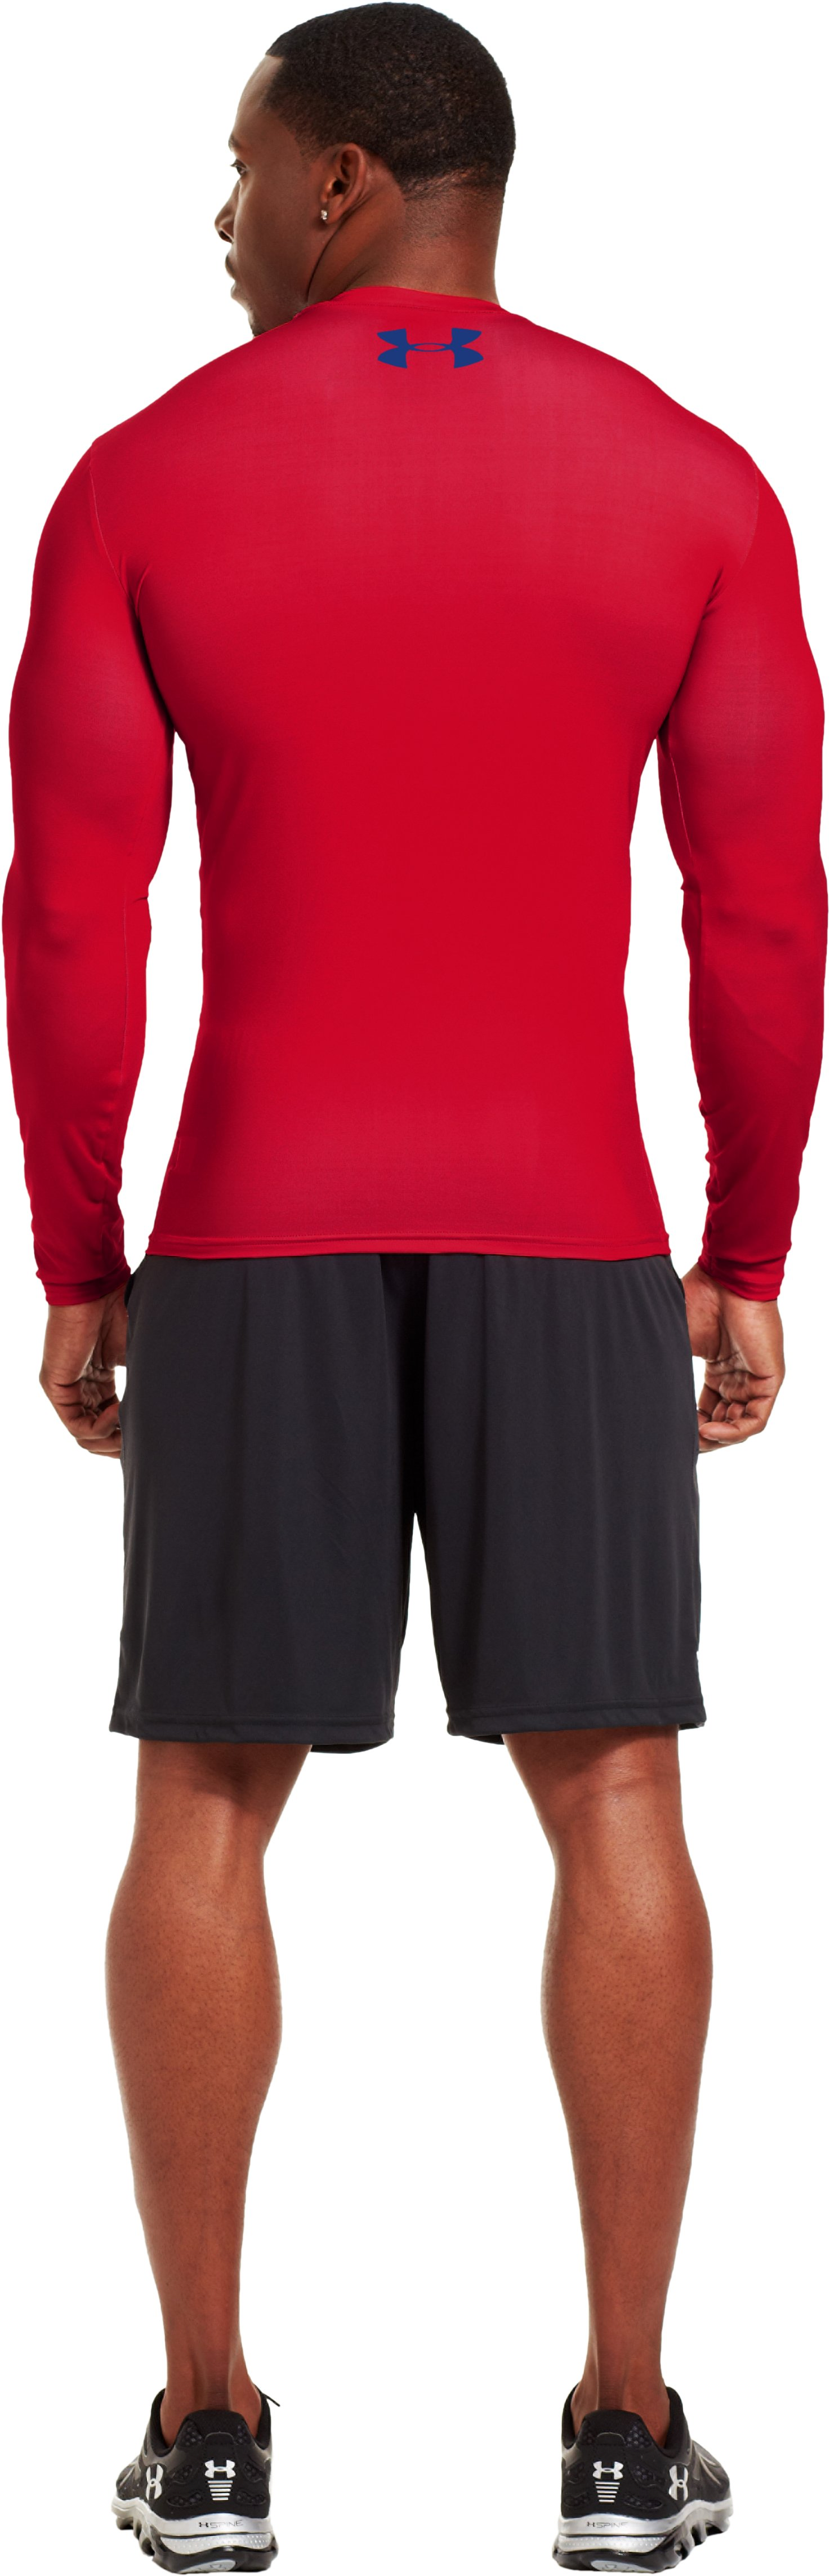 Men's Under Armour® Alter Ego Compression Long Sleeve Shirt, Red, Back